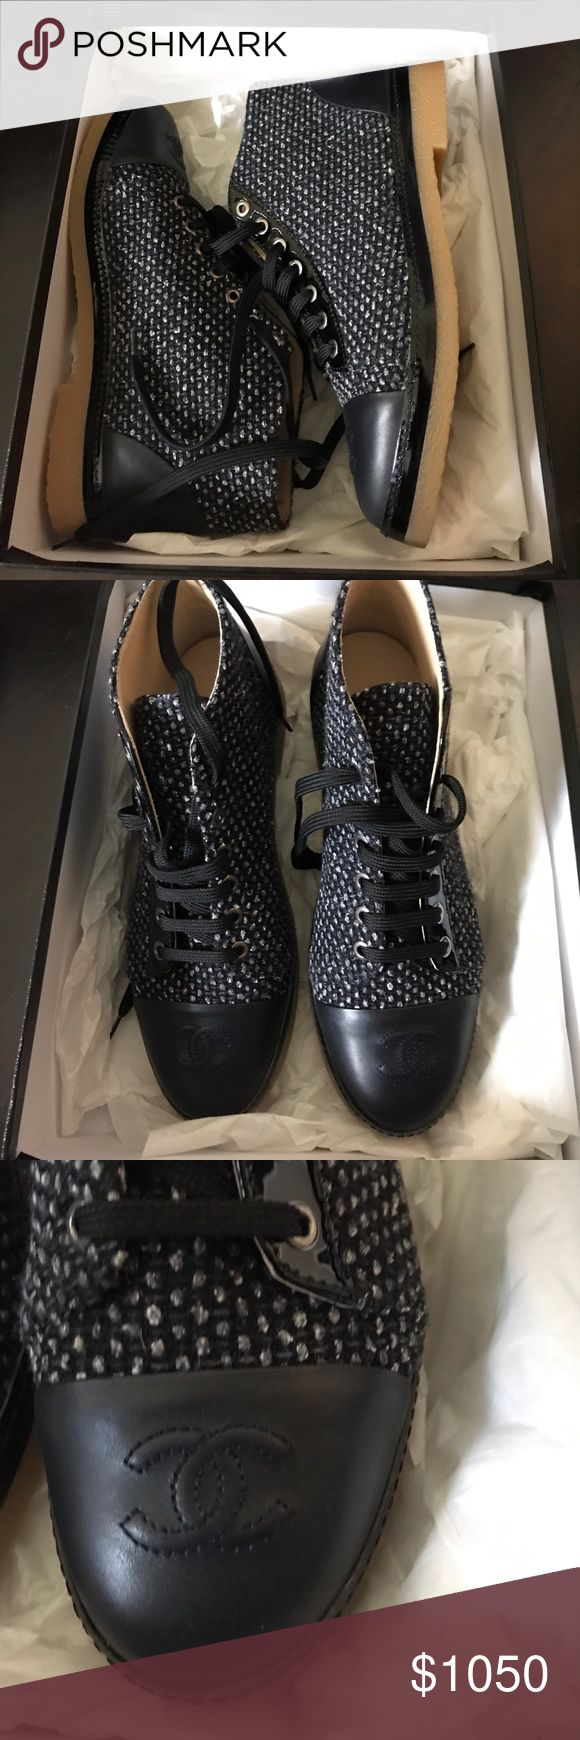 NWT Chanel Lace Up Tweed Shoes - MSRP $1050 + tax Brand New! This is the price without tax which was $89.25. Purchased at Saks Fifth Avenue but also sold at The Chanel Store, Bergdorf Goodman and Neiman Marcus. Price is firm as I am losing over 20% plus tax on this item. Thank you. CHANEL Shoes